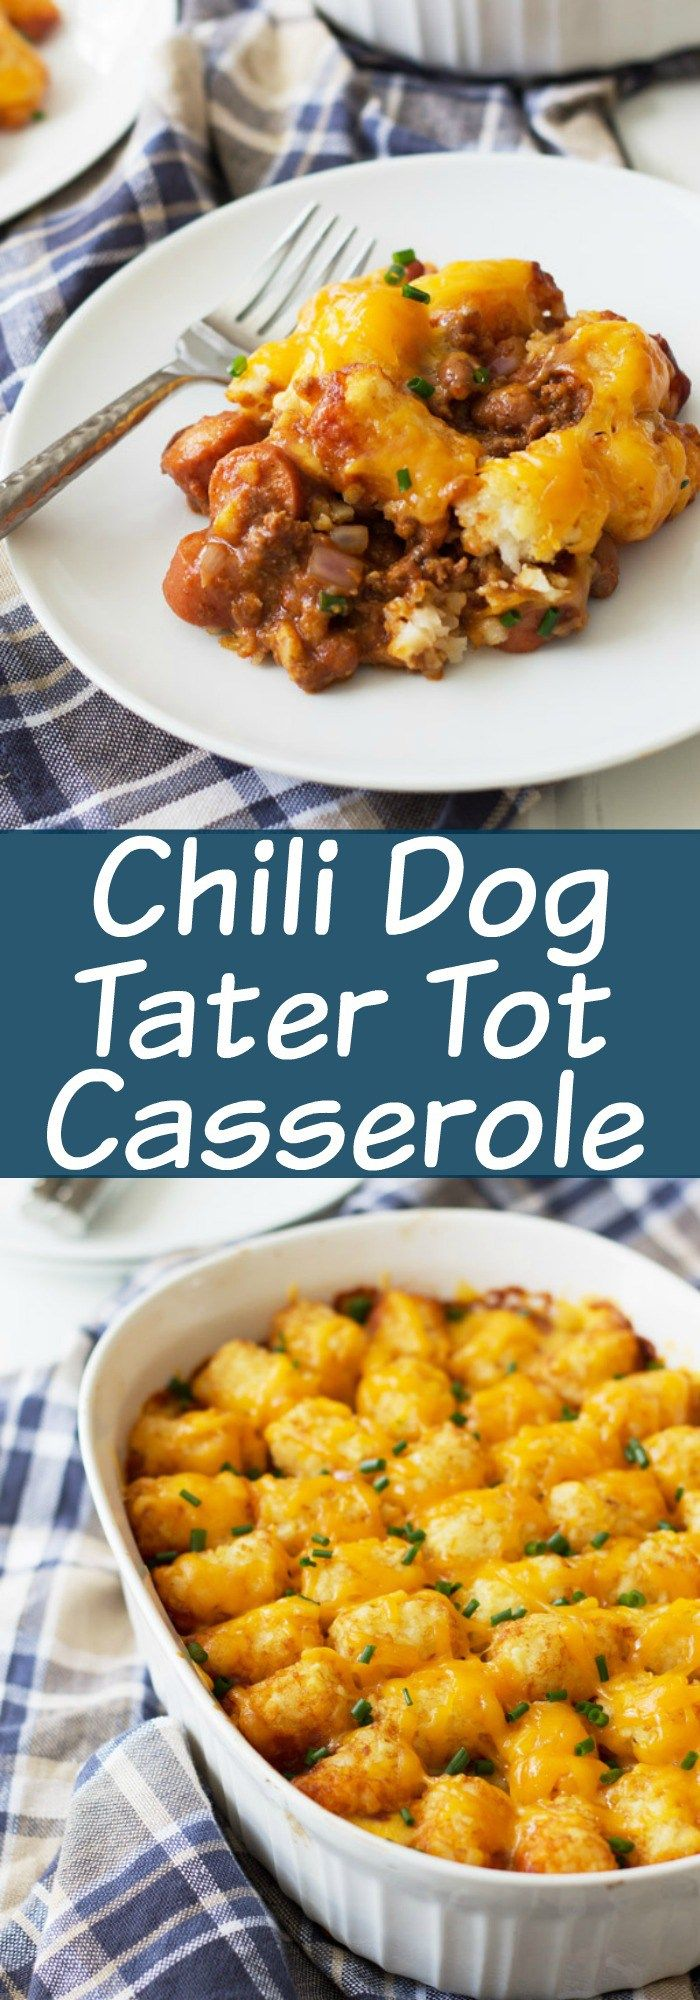 Chili Dog Tater Tot Casserole is a twist on a family favorite recipe. Chili, cheese, hot dogs, tater tots....need I say more?!?! | www.countrysidecr...